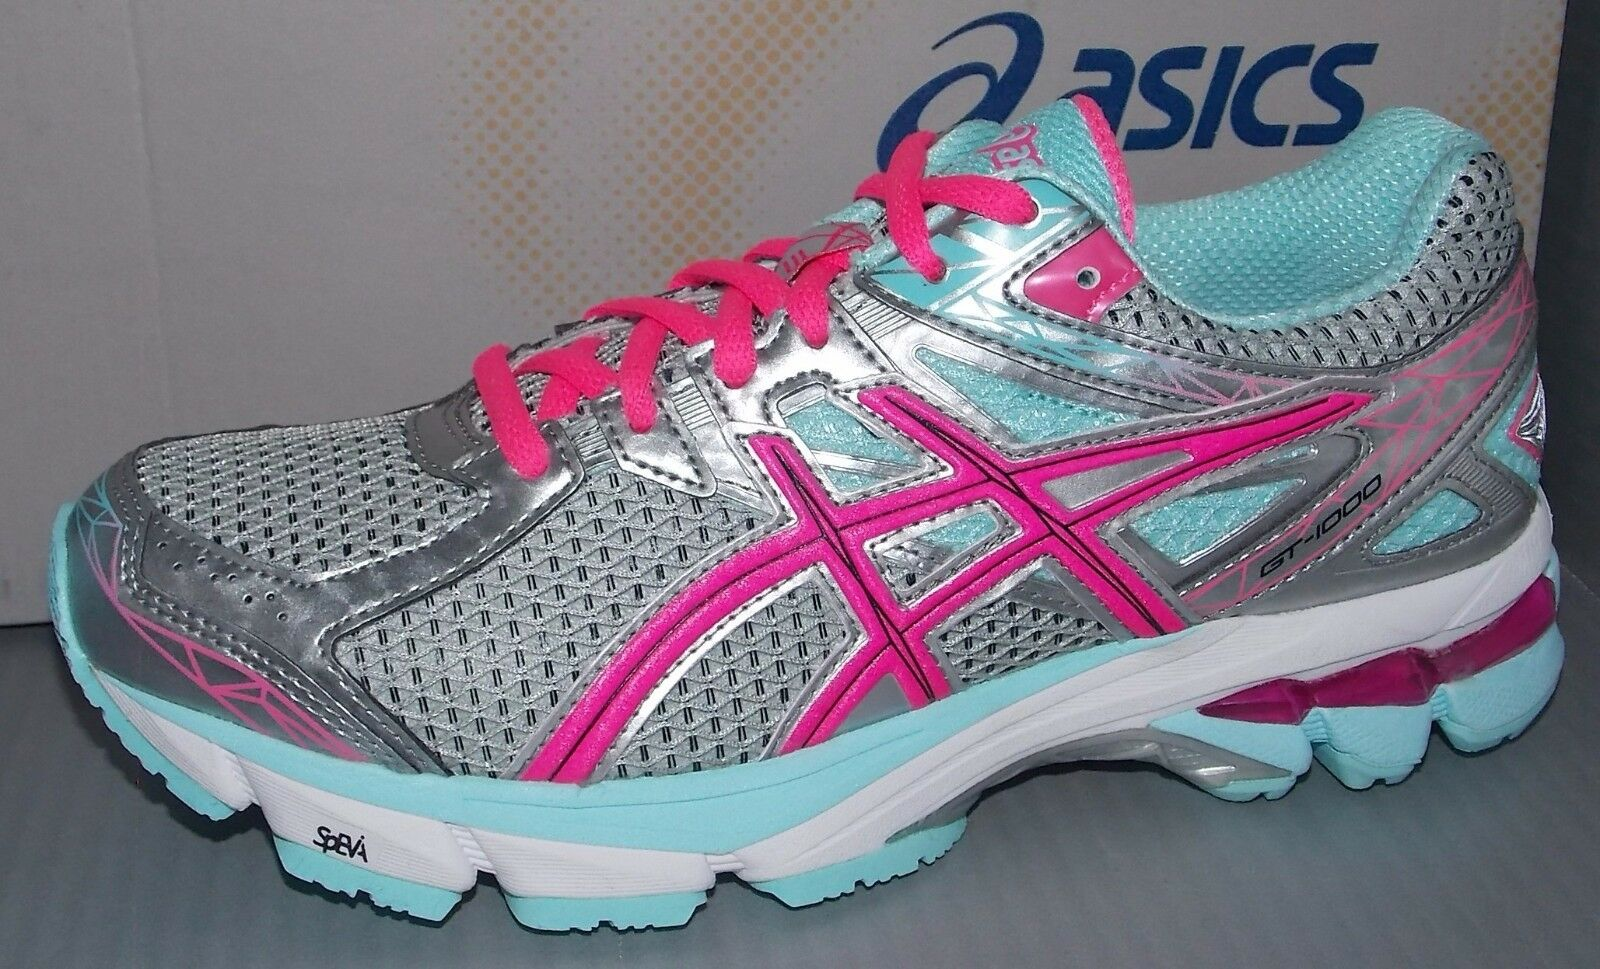 WOMENS ASICS GT - 1000 3 in colors LIGHTNING / HOT PINK / MINT SIZE 6.5 Casual wild